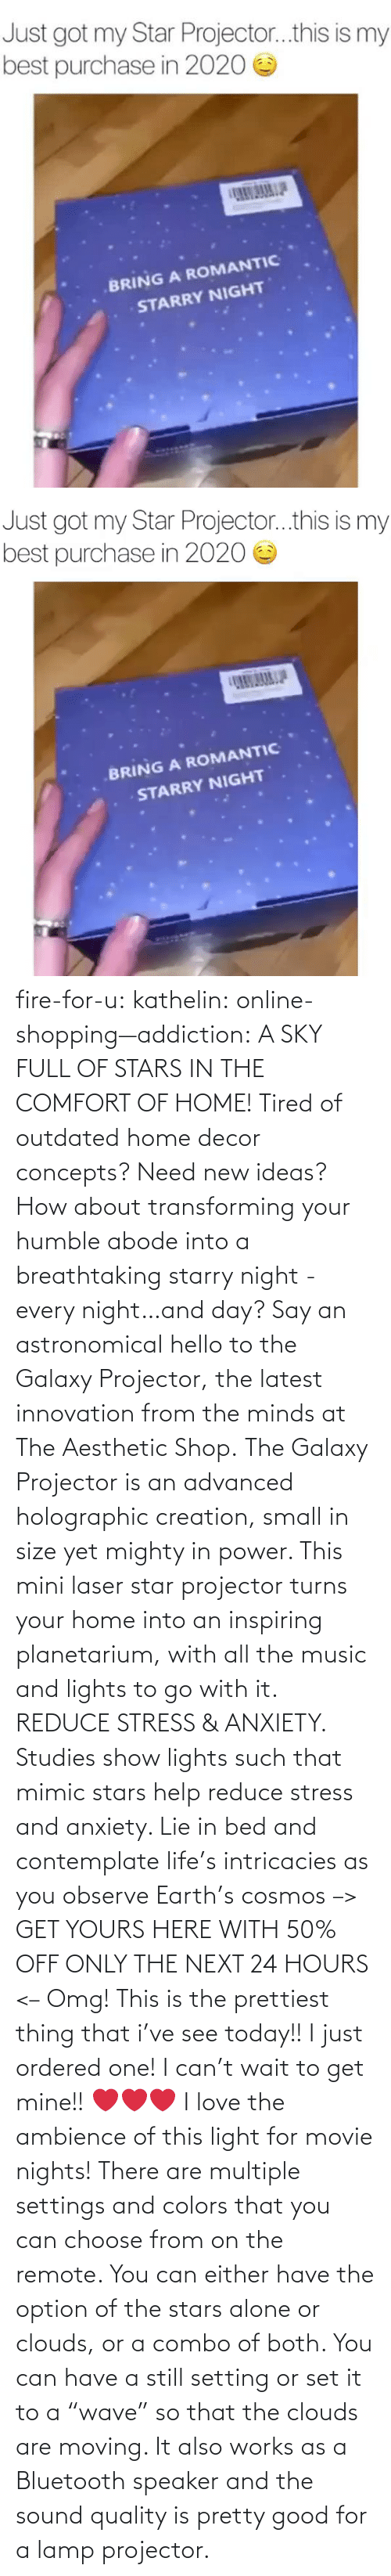 "ideas: fire-for-u:  kathelin: online-shopping—addiction:  A SKY FULL OF STARS IN THE COMFORT OF HOME! Tired of outdated home decor concepts? Need new ideas? How about transforming your humble abode into a breathtaking starry night - every night…and day? Say an astronomical hello to the Galaxy Projector, the latest innovation from the minds at The Aesthetic Shop. The Galaxy Projector is an advanced holographic creation, small in size yet mighty in power. This mini laser star projector turns your home into an inspiring planetarium, with all the music and lights to go with it. REDUCE STRESS & ANXIETY. Studies show lights such that mimic stars help reduce stress and anxiety. Lie in bed and contemplate life's intricacies as you observe Earth's cosmos  –> GET YOURS HERE WITH 50% OFF ONLY THE NEXT 24 HOURS <–   Omg! This is the prettiest thing that i've see today!! I just ordered one! I can't wait to get mine!! ❤️️❤️️❤️️  I love the ambience of this light for movie nights! There are multiple settings and colors that you can choose from on the remote. You can either have the option of the stars alone or clouds, or a combo of both. You can have a still setting or set it to a ""wave"" so that the clouds are moving. It also works as a Bluetooth speaker and the sound quality is pretty good for a lamp projector."